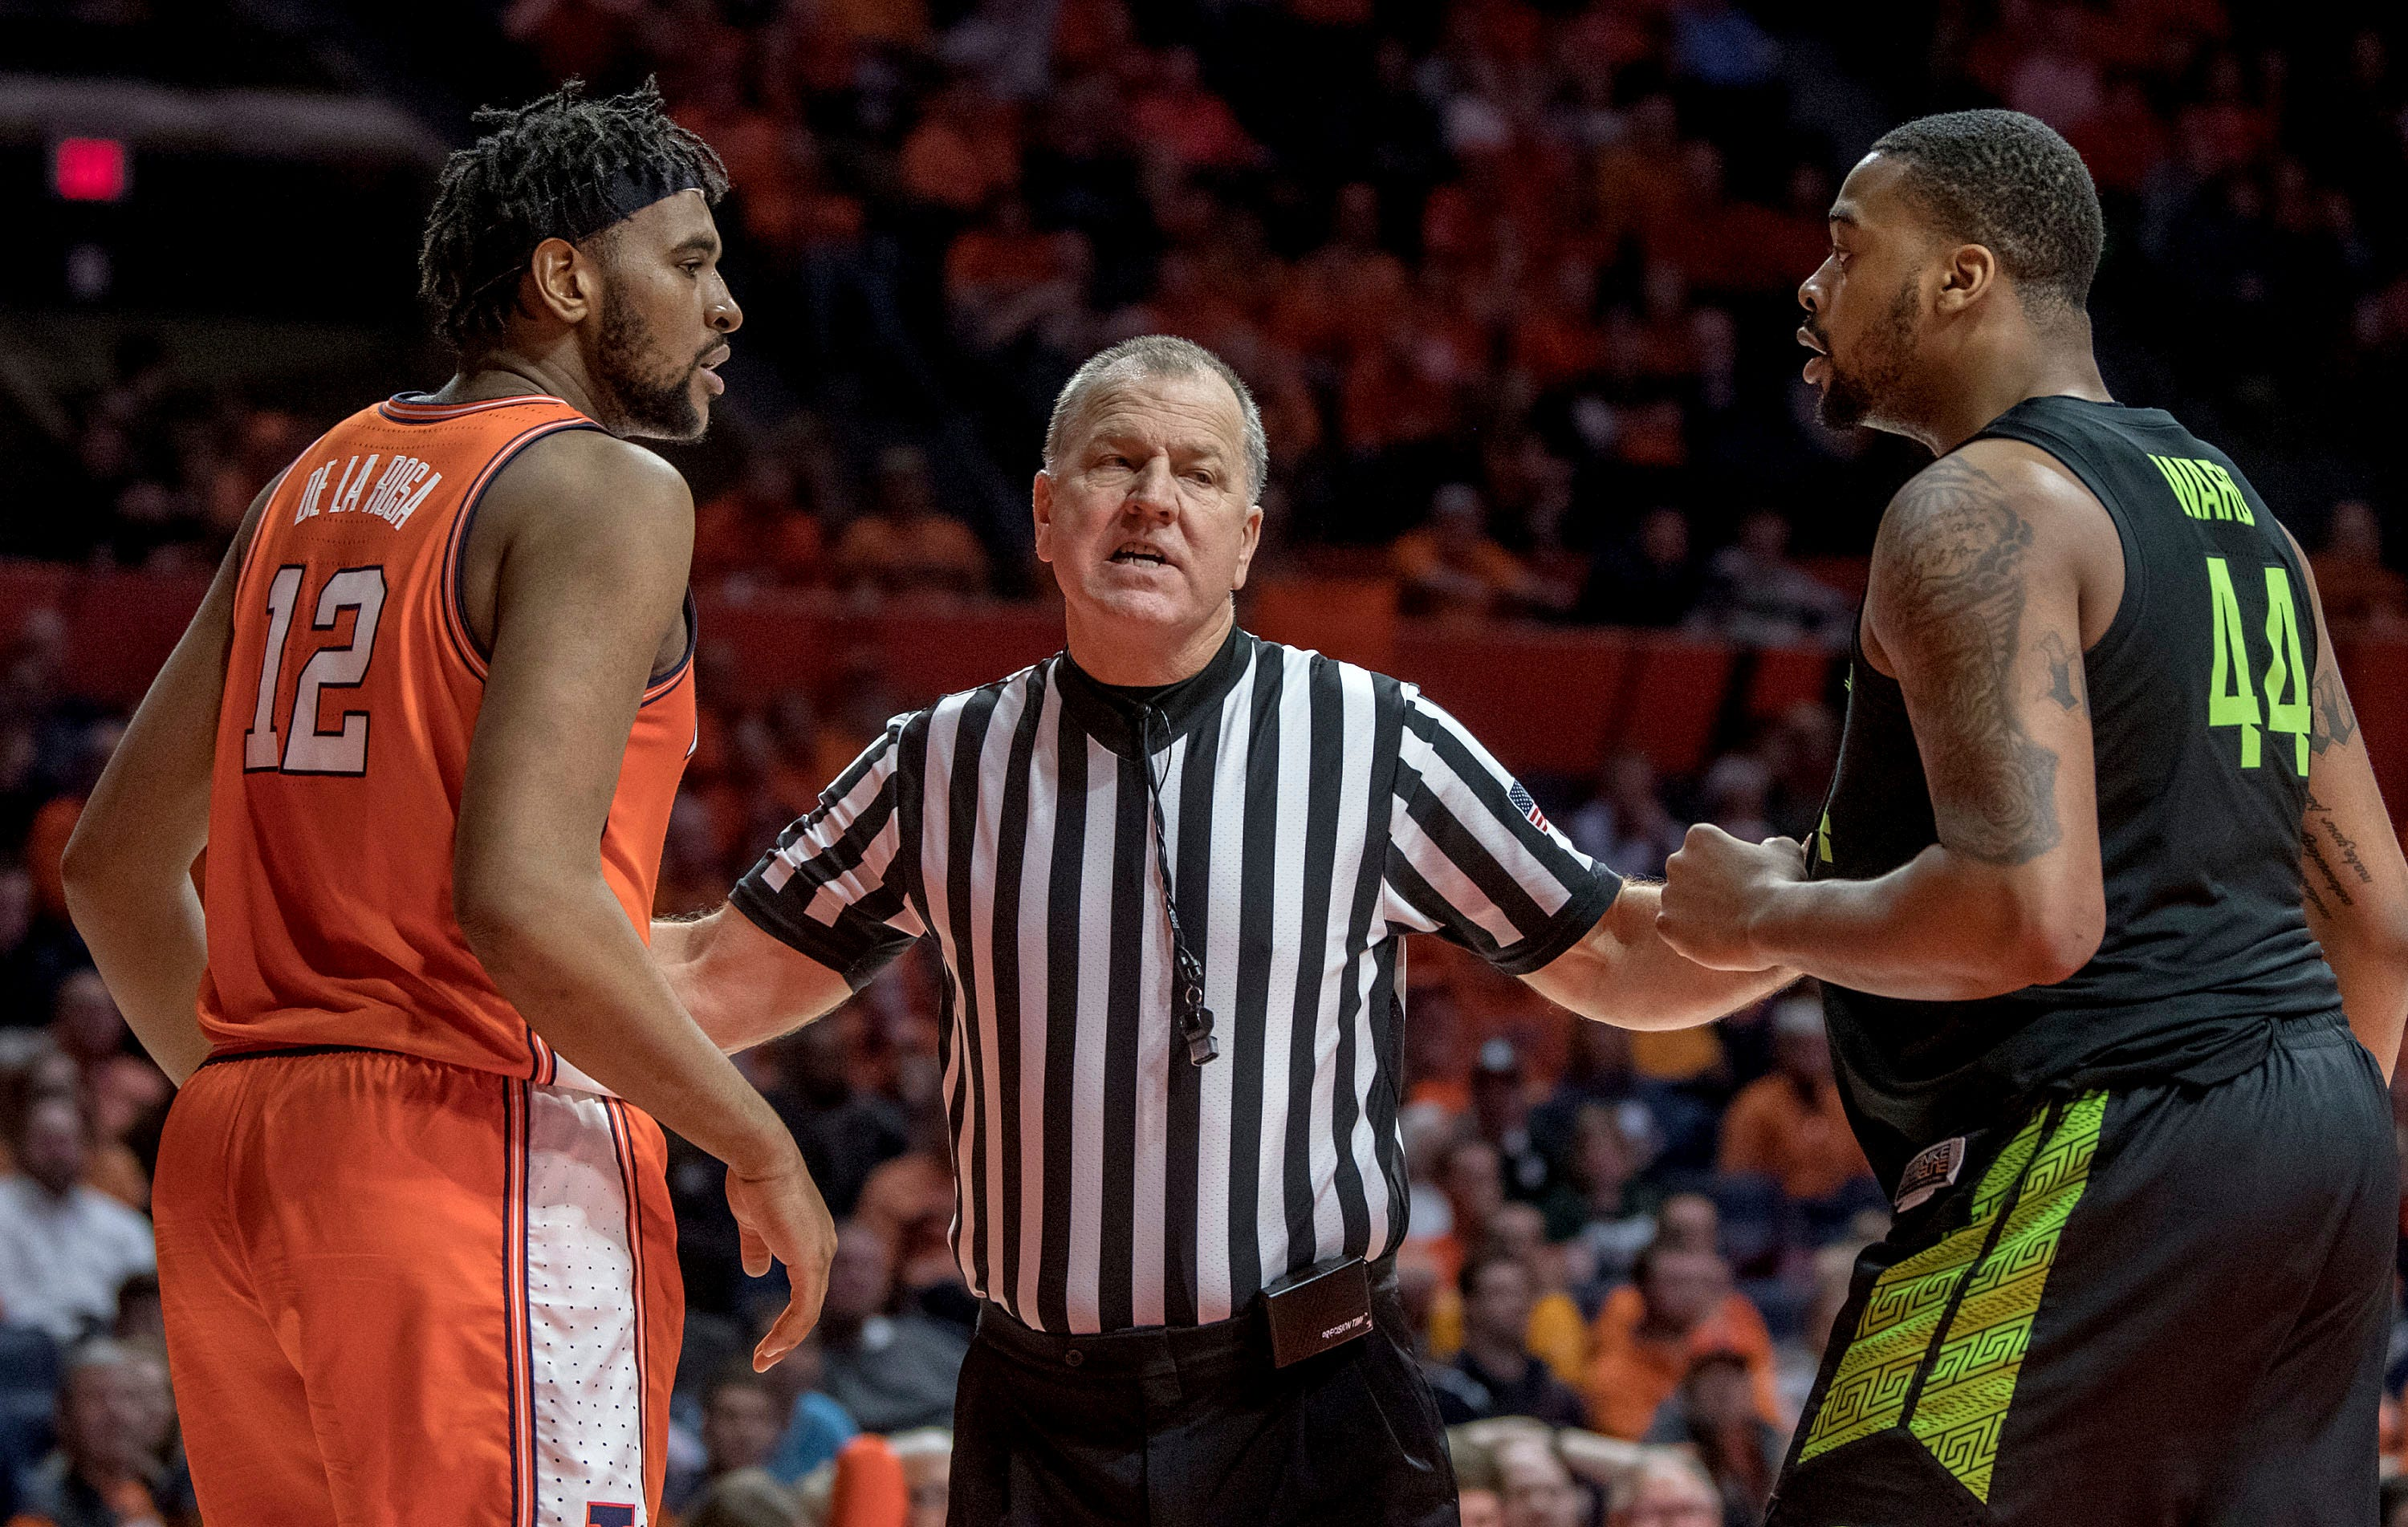 An official gets between Illinois center Adonis De La Rosa and Michigan State forward Nick Ward.